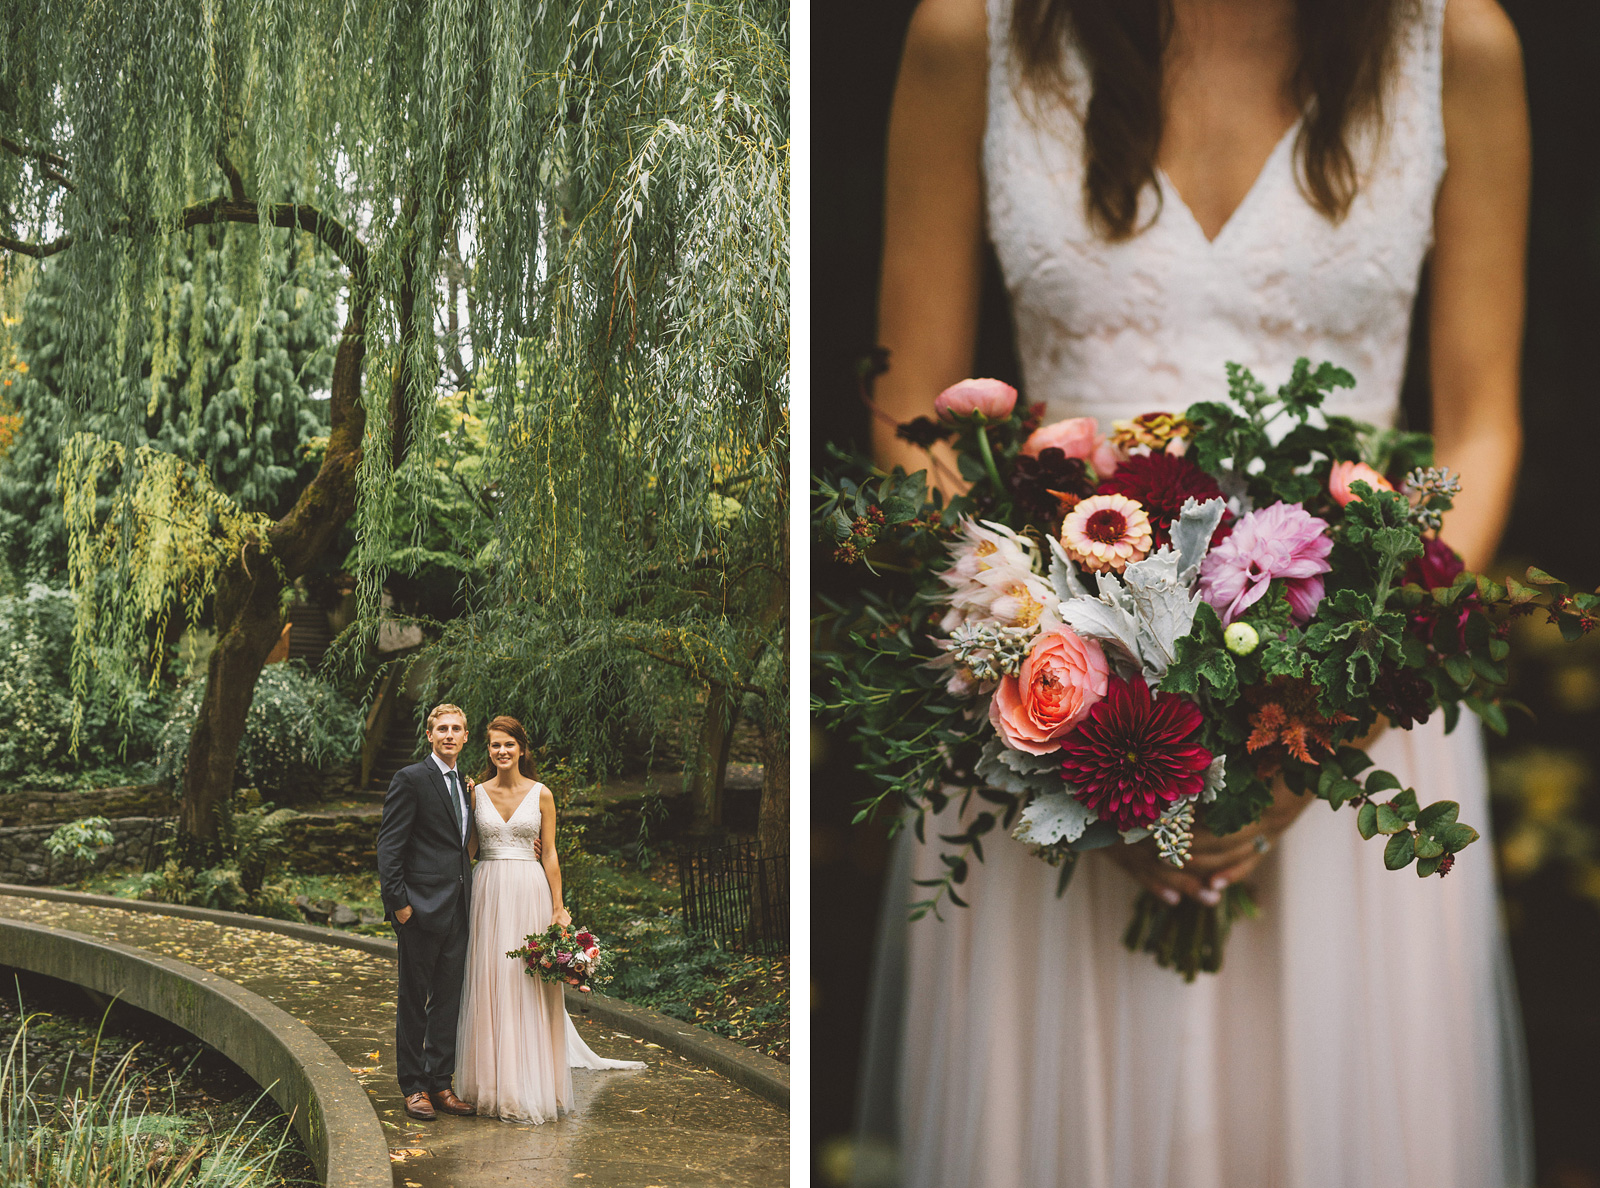 Portraits of Bride and Groom at Crystal Springs Rhododendron Garden